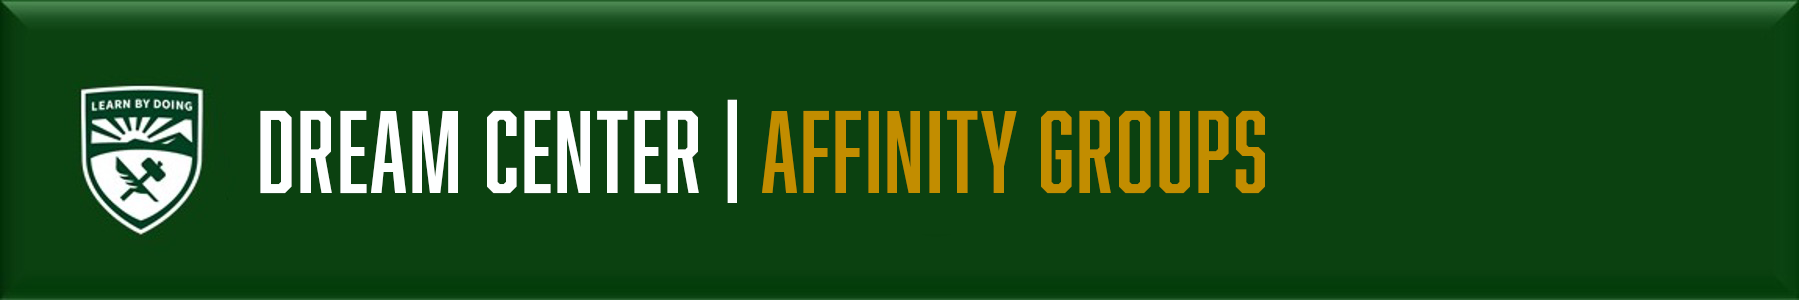 Affinity Groups